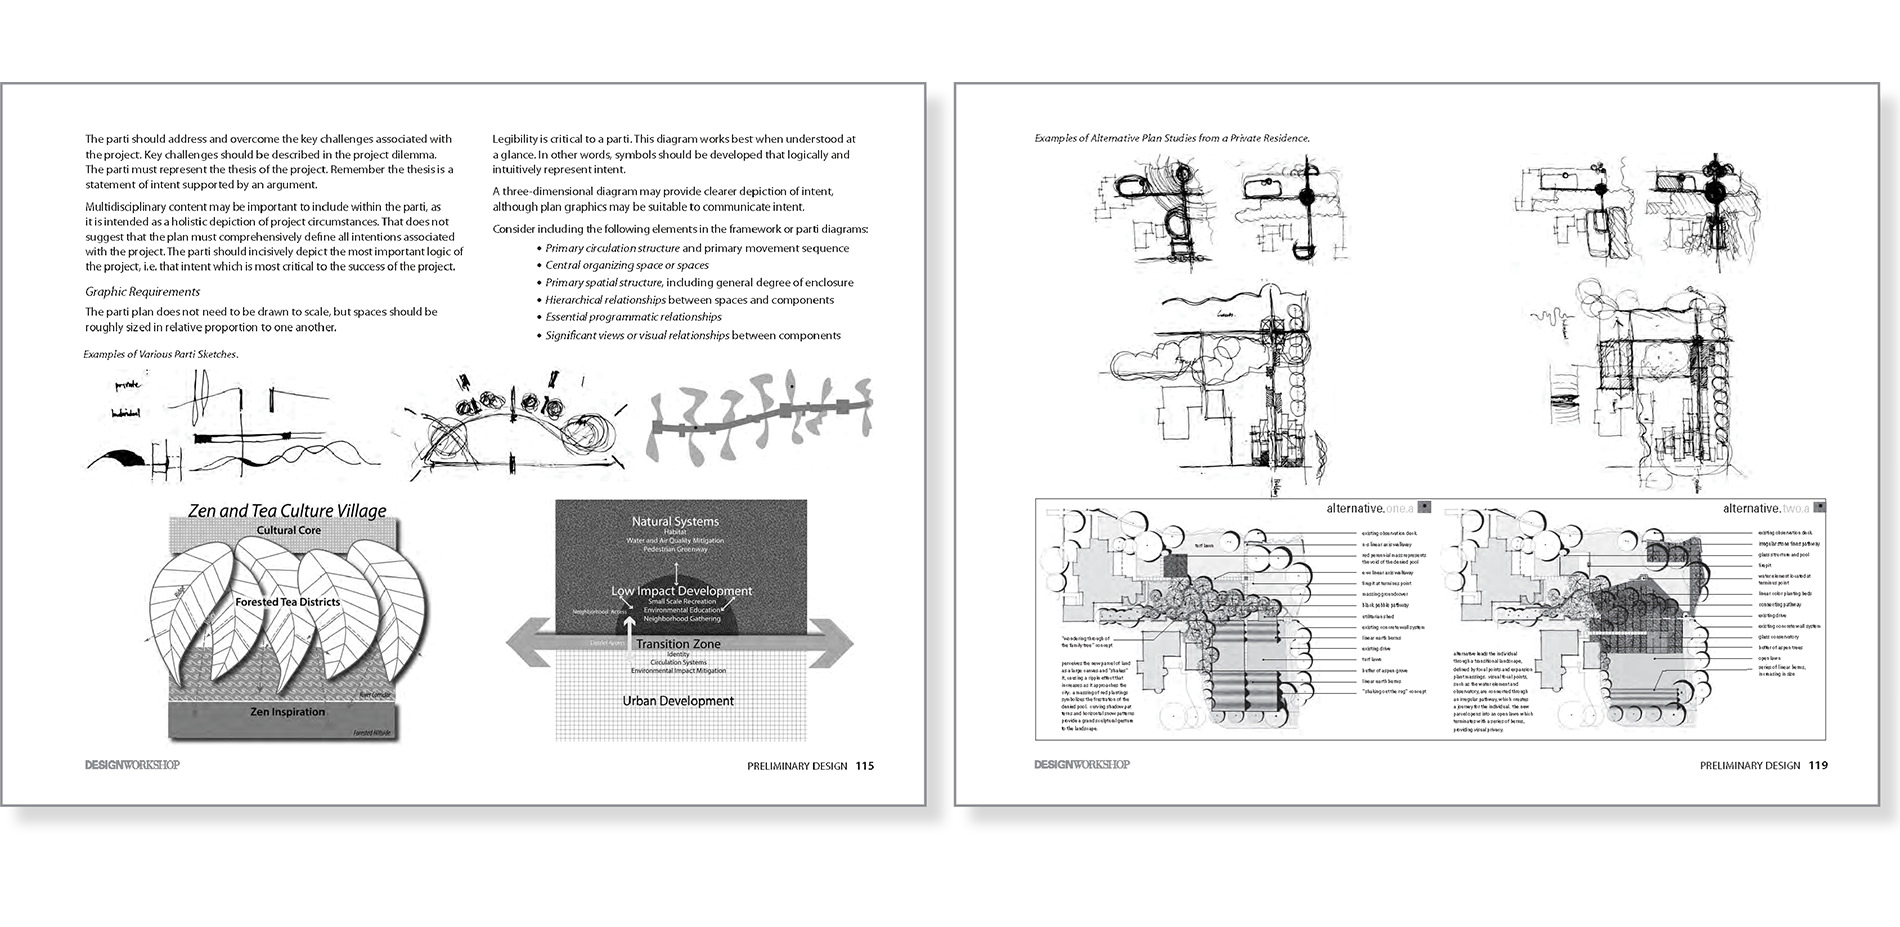 Exellent Architecture Design Guidelines Image The Active